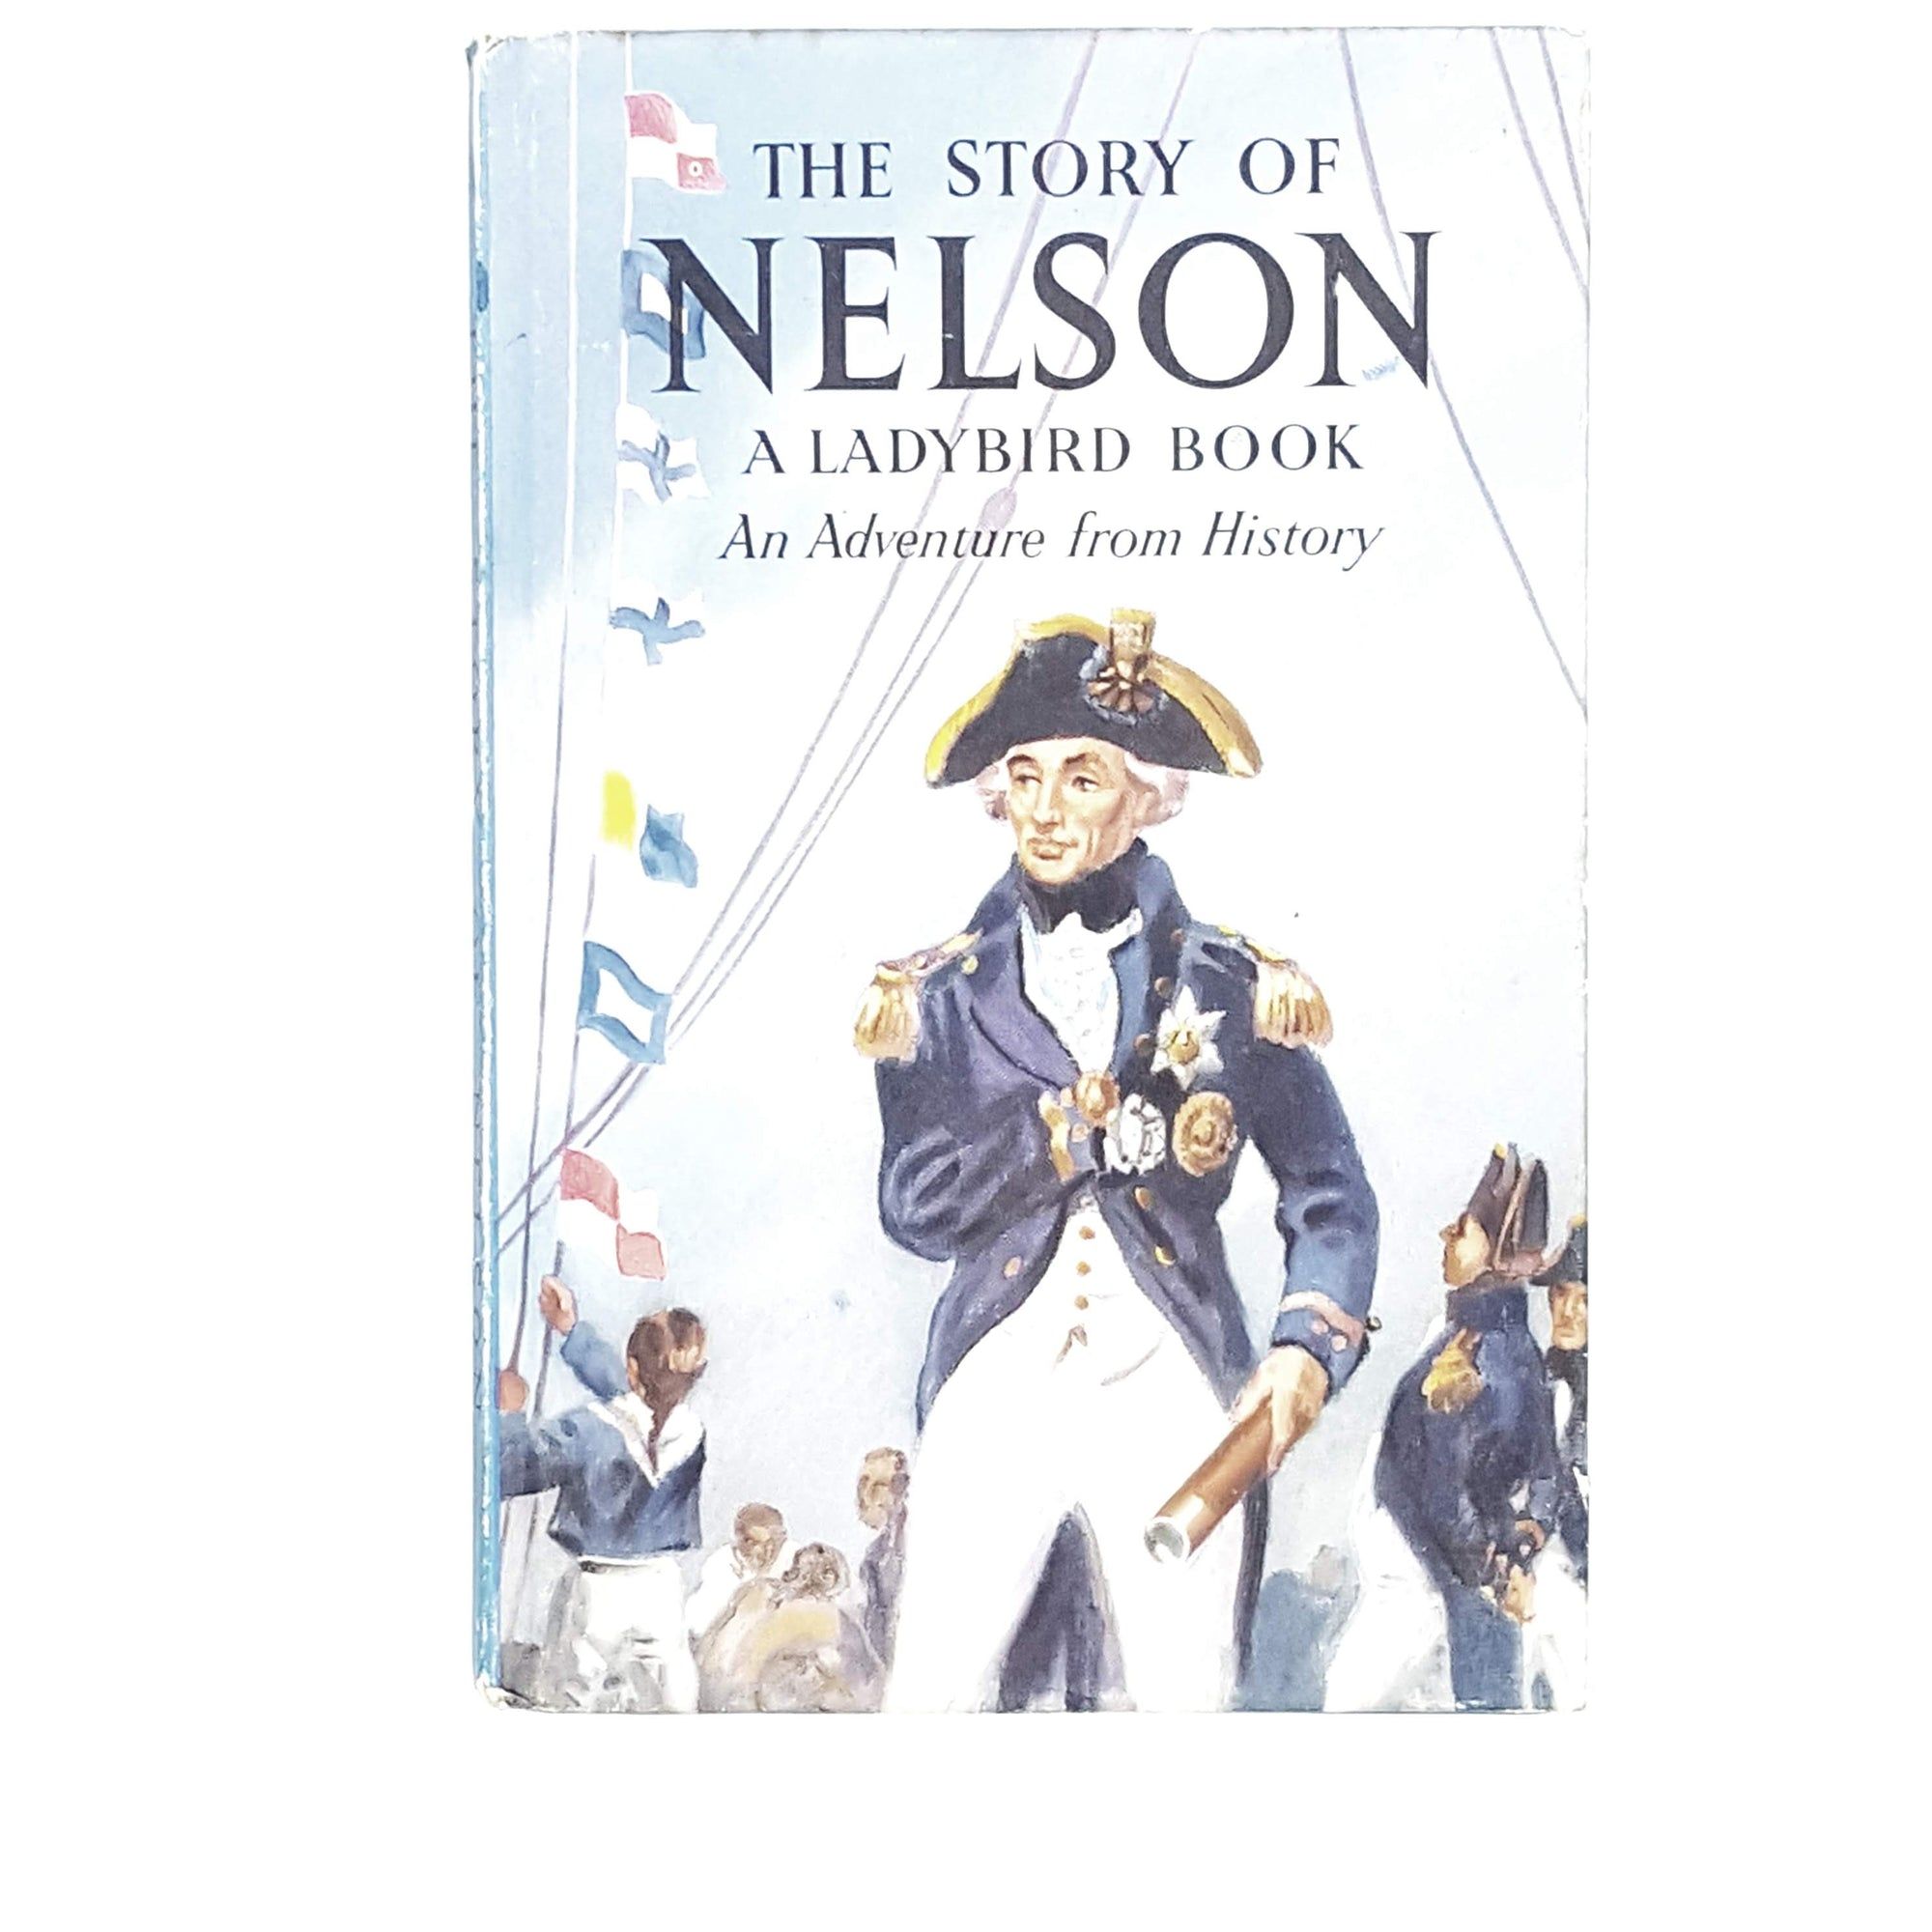 ladybird-history-the-story-of-nelson-1957-vintage-online-bookstore-country-house-library